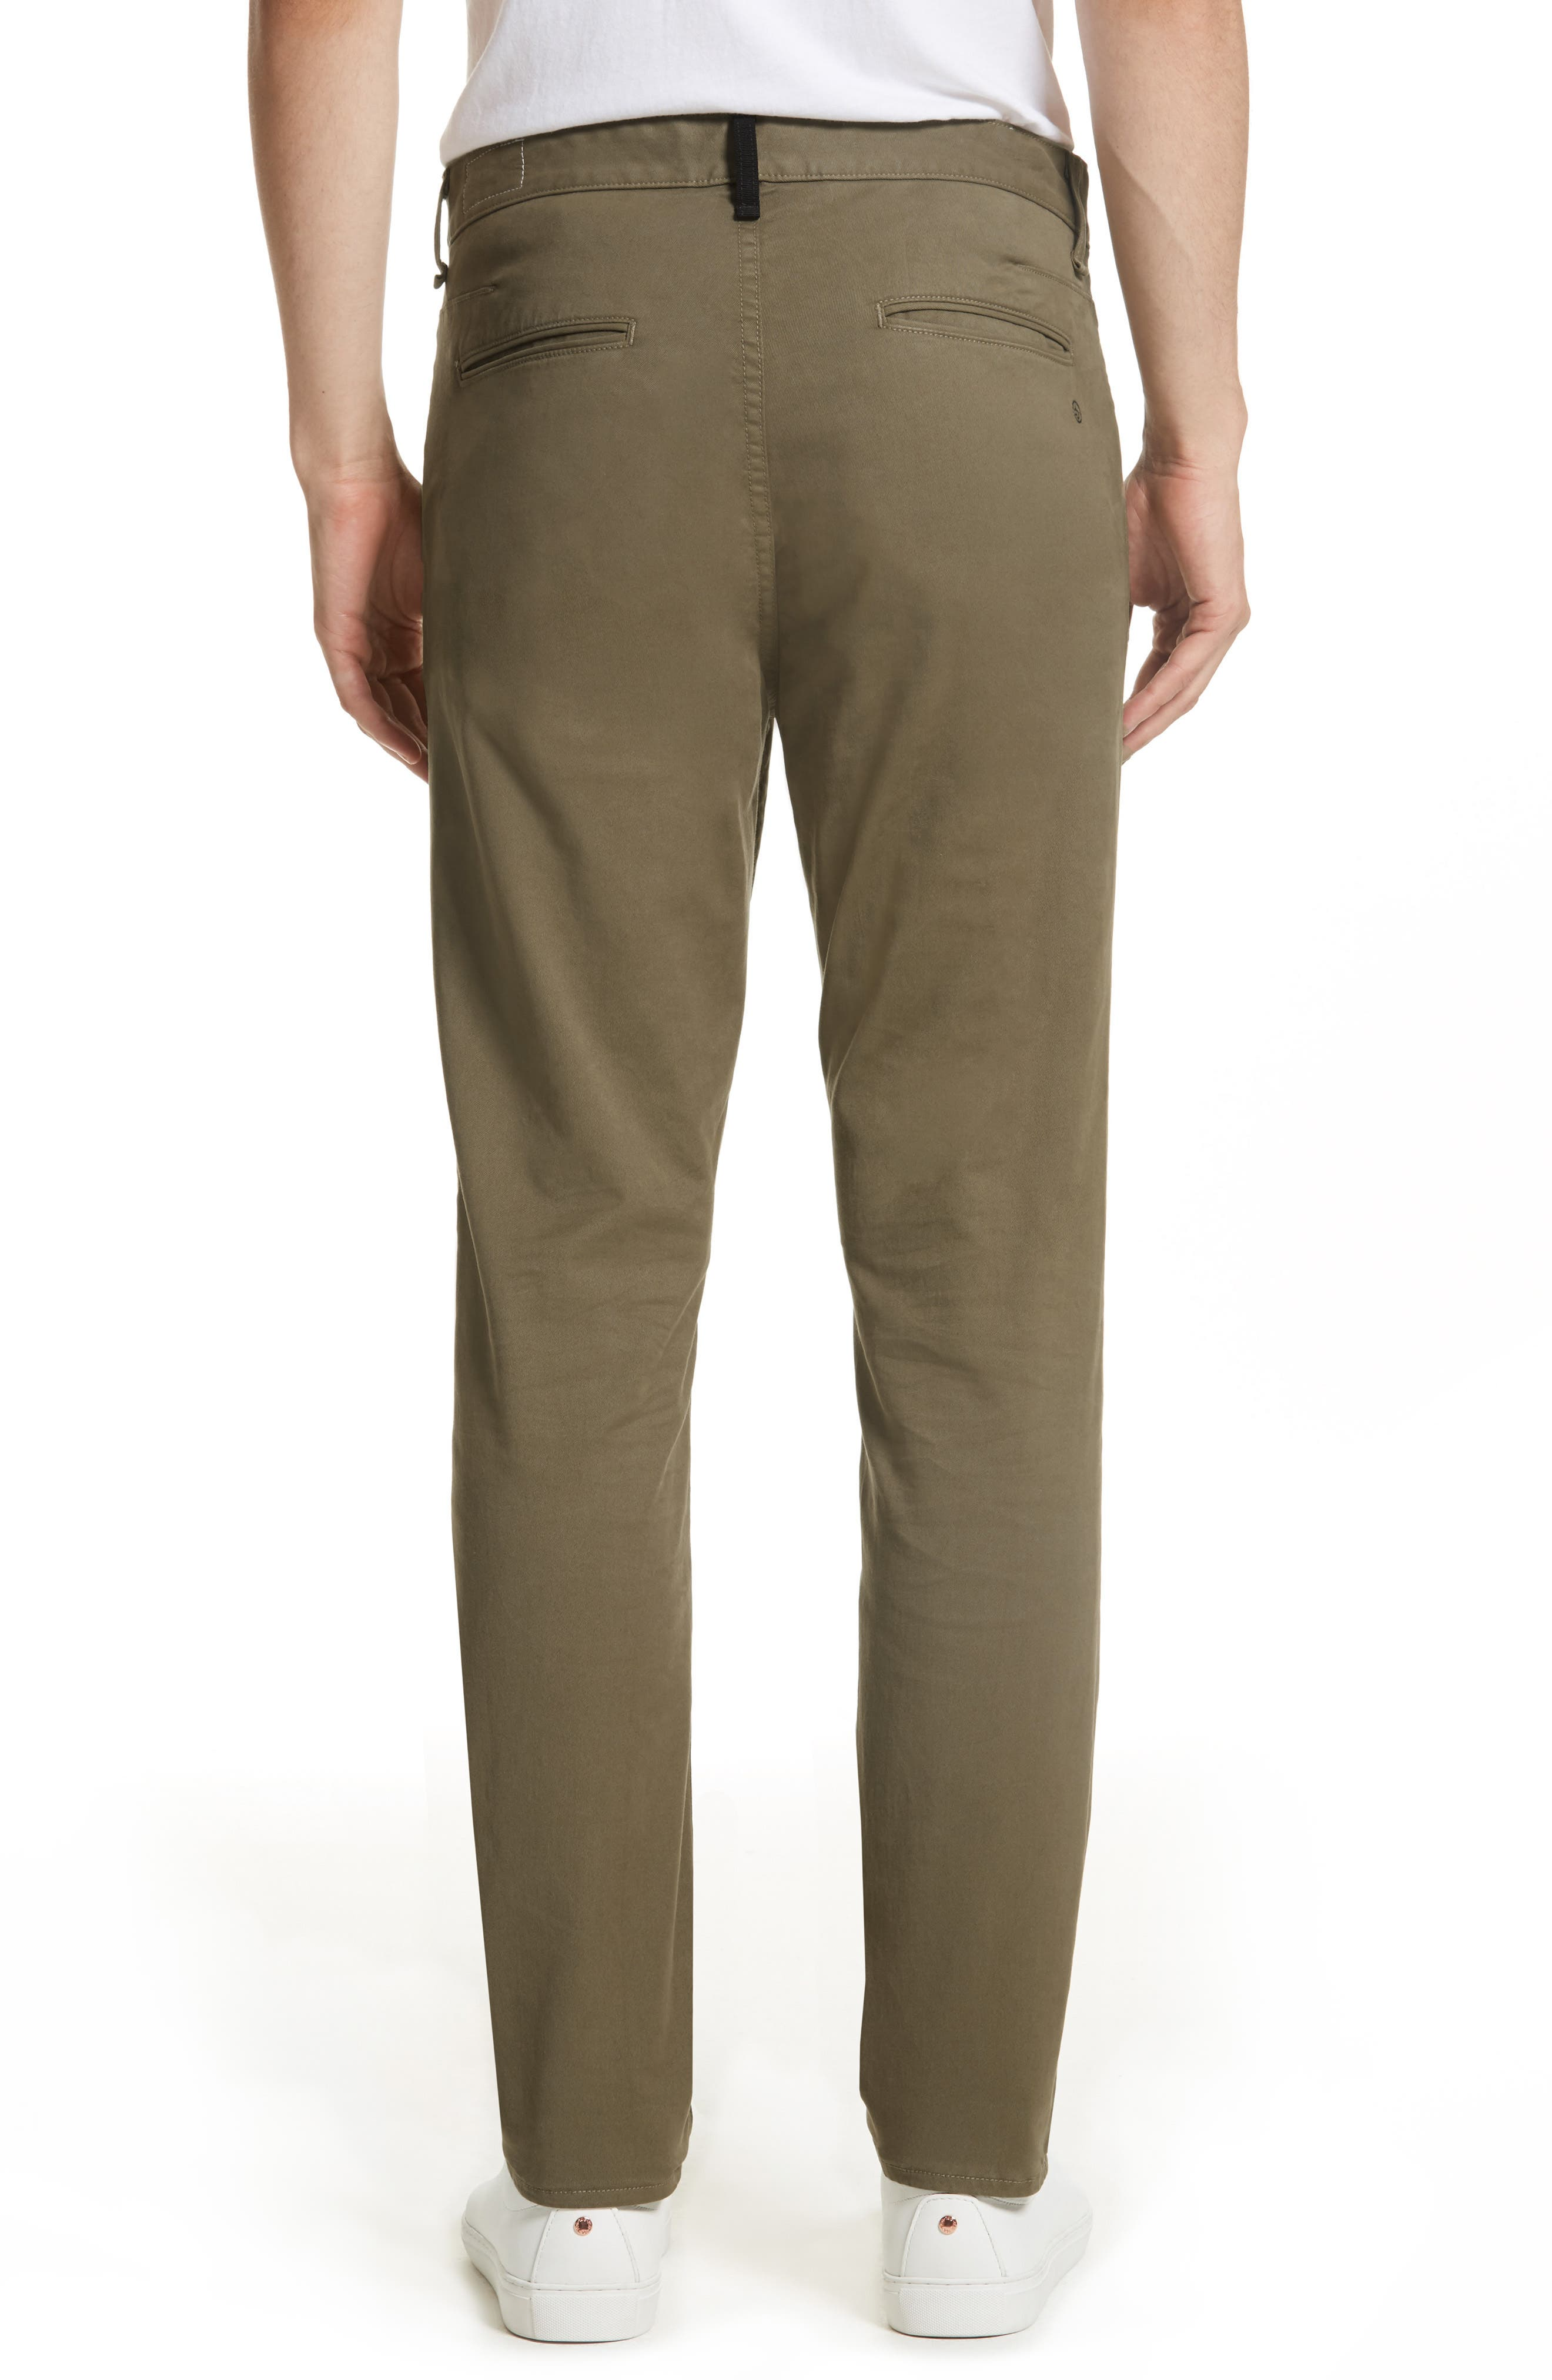 Fit 2 Chinos,                             Alternate thumbnail 2, color,                             ARMY